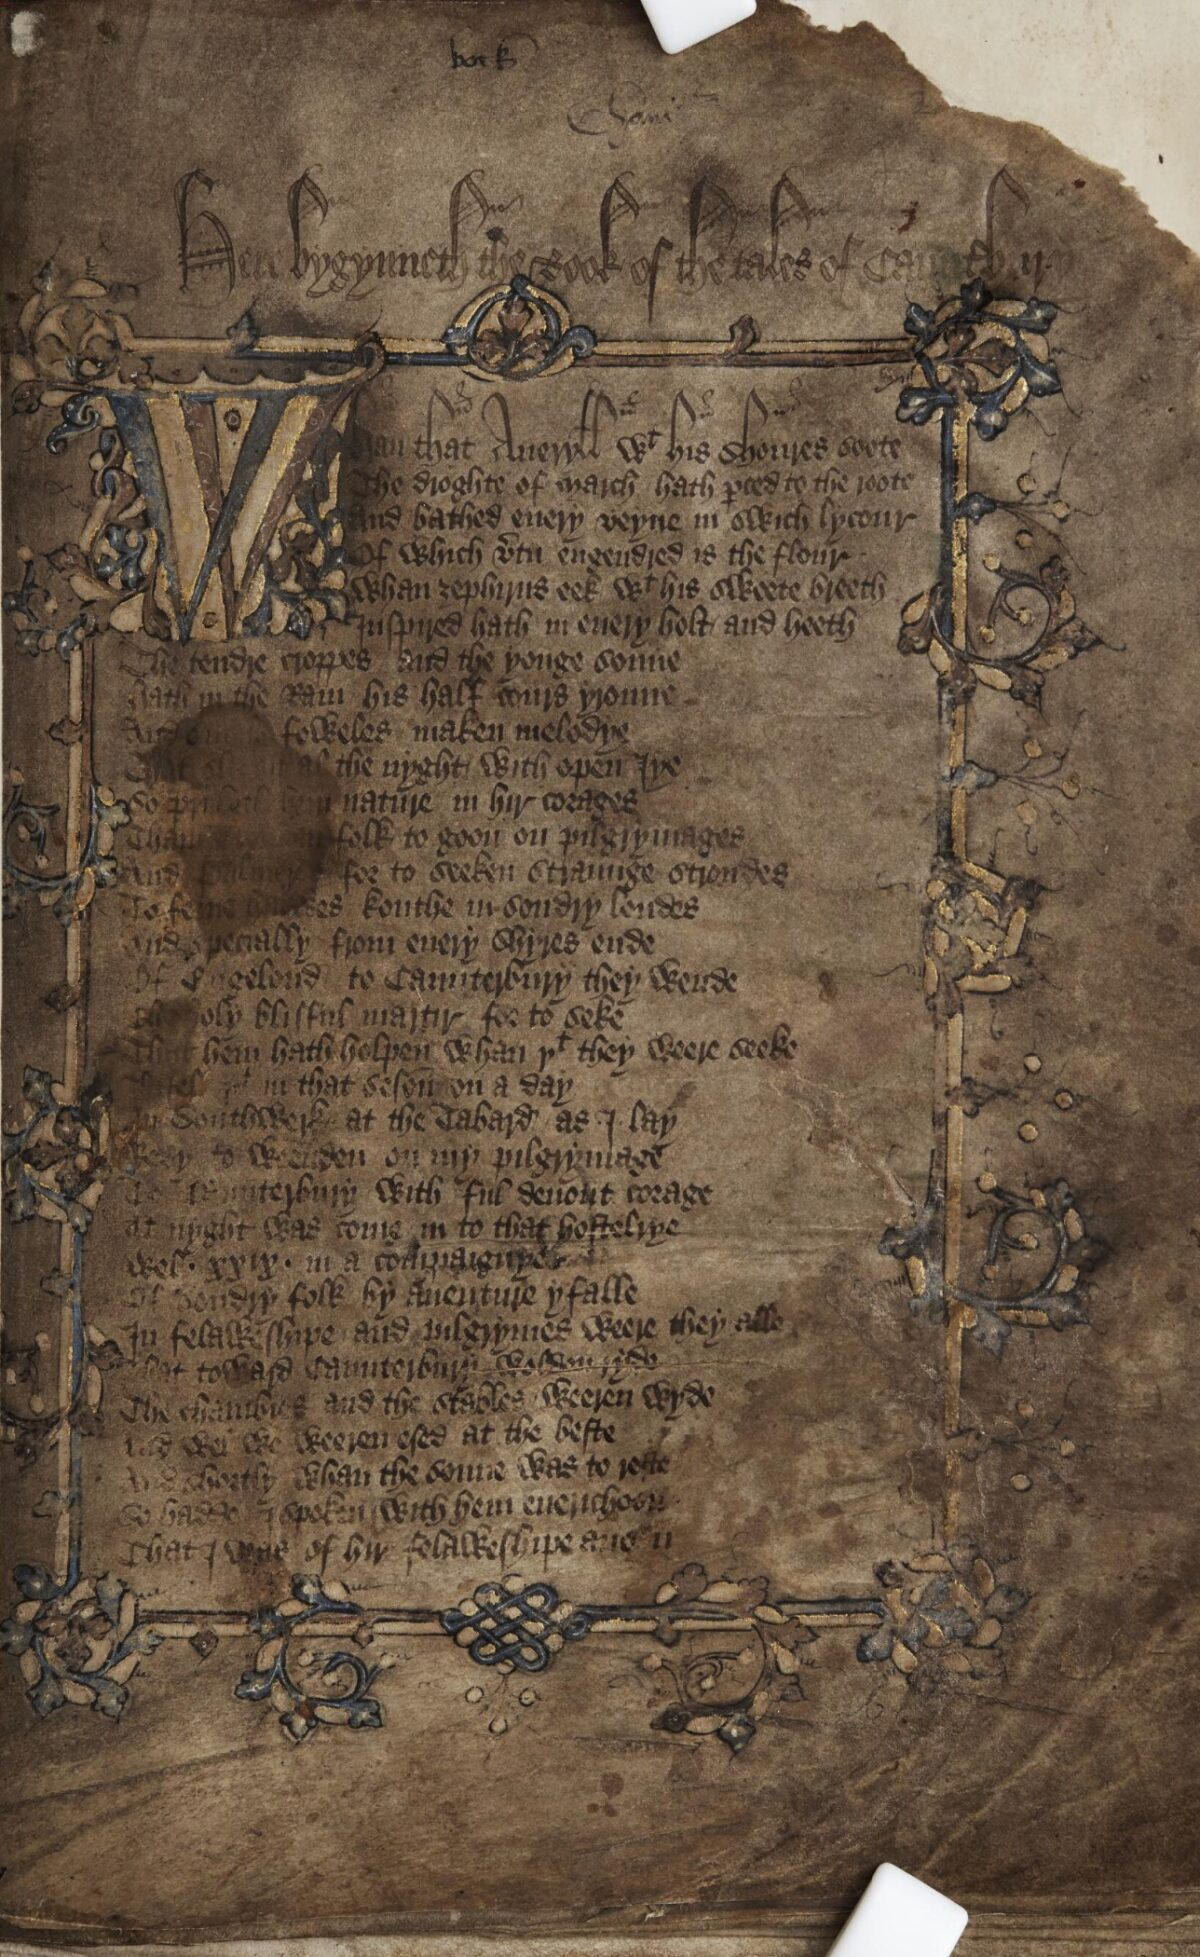 Hengwrt_Chaucer_title_page